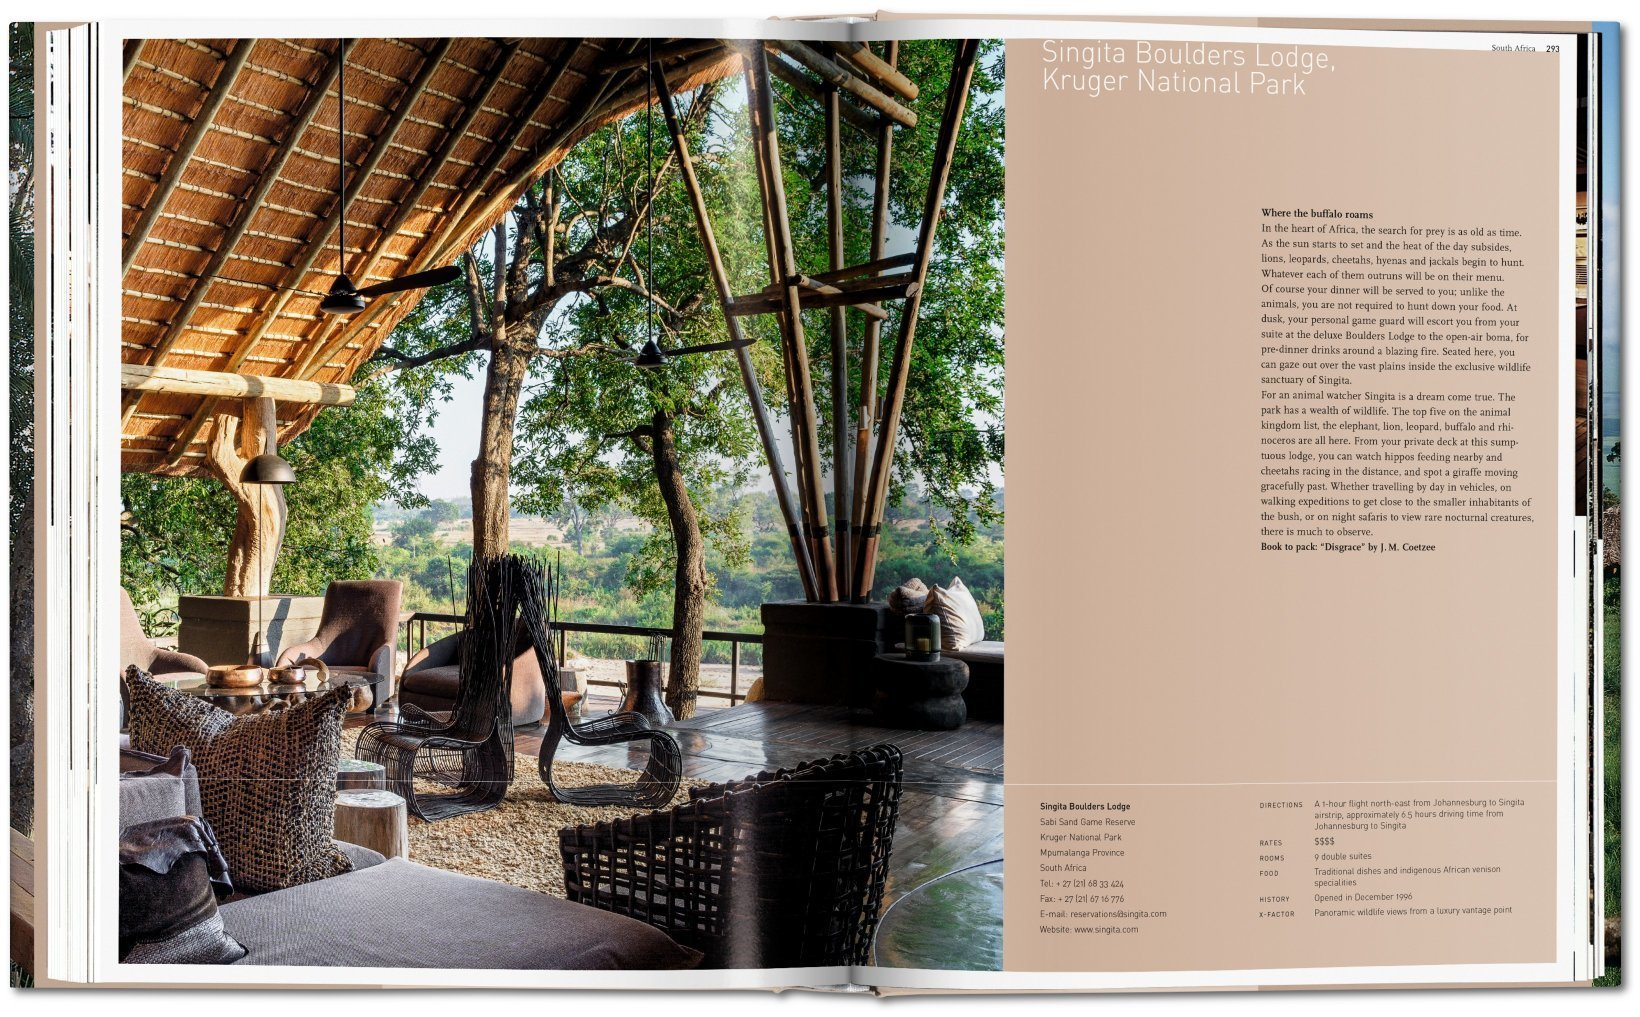 Great escapes africa updated edition taschen books updated edition image 6 great escapes africa updated edition image 7 publicscrutiny Images